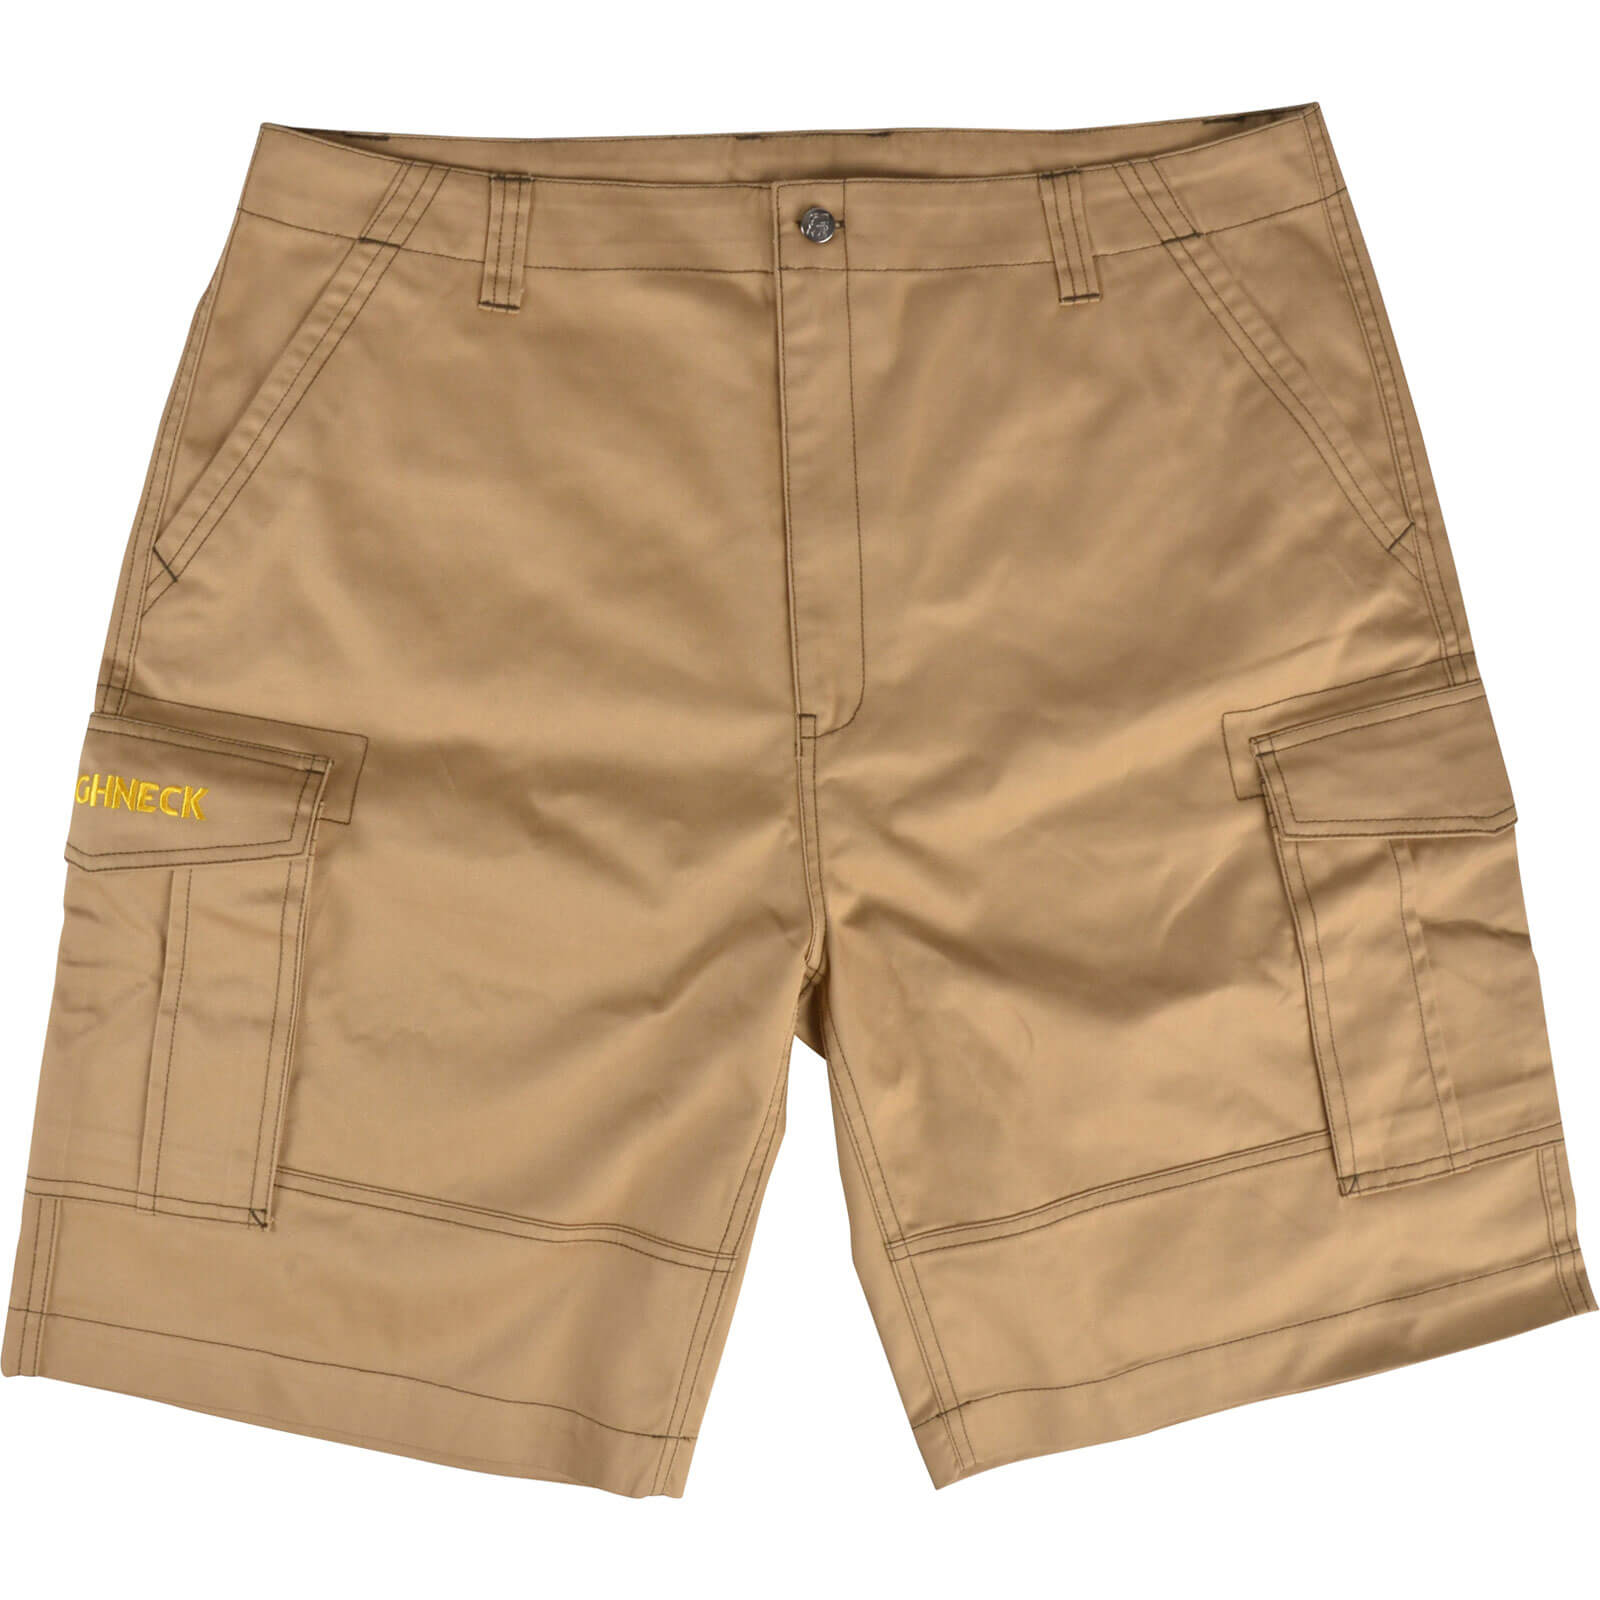 Roughneck Mens Cargo Shorts Khaki 36